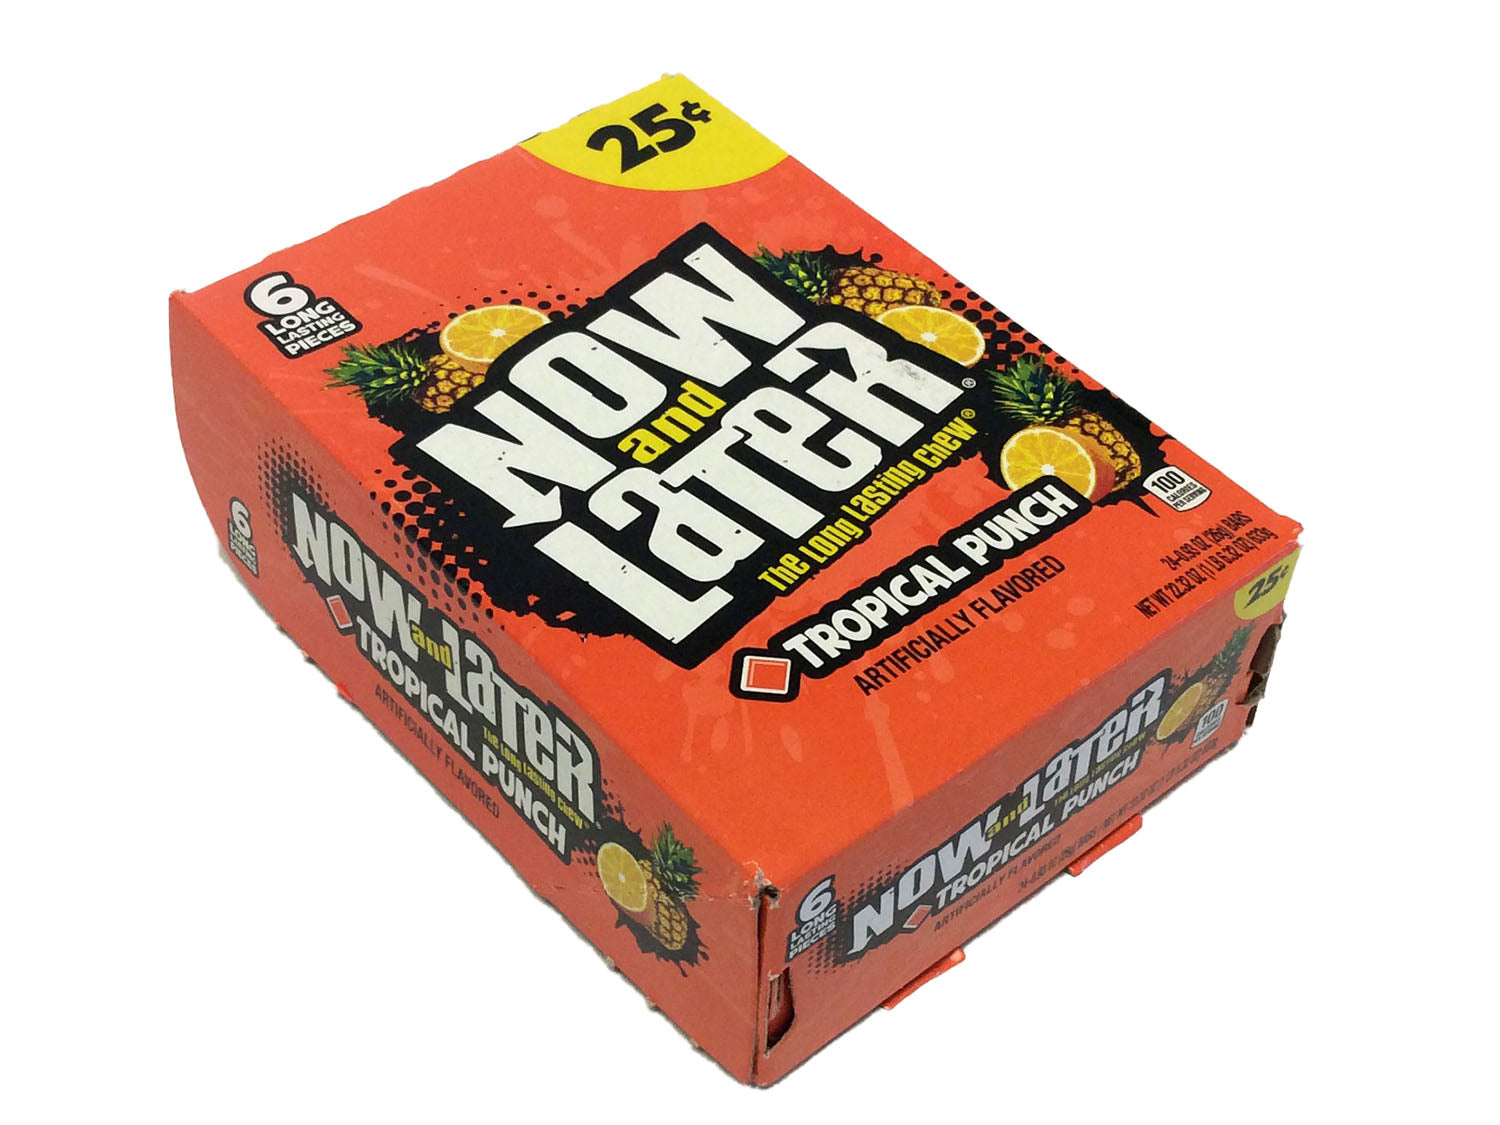 Now & Later - tropical punch - 0.93 oz pkg - 6-pack